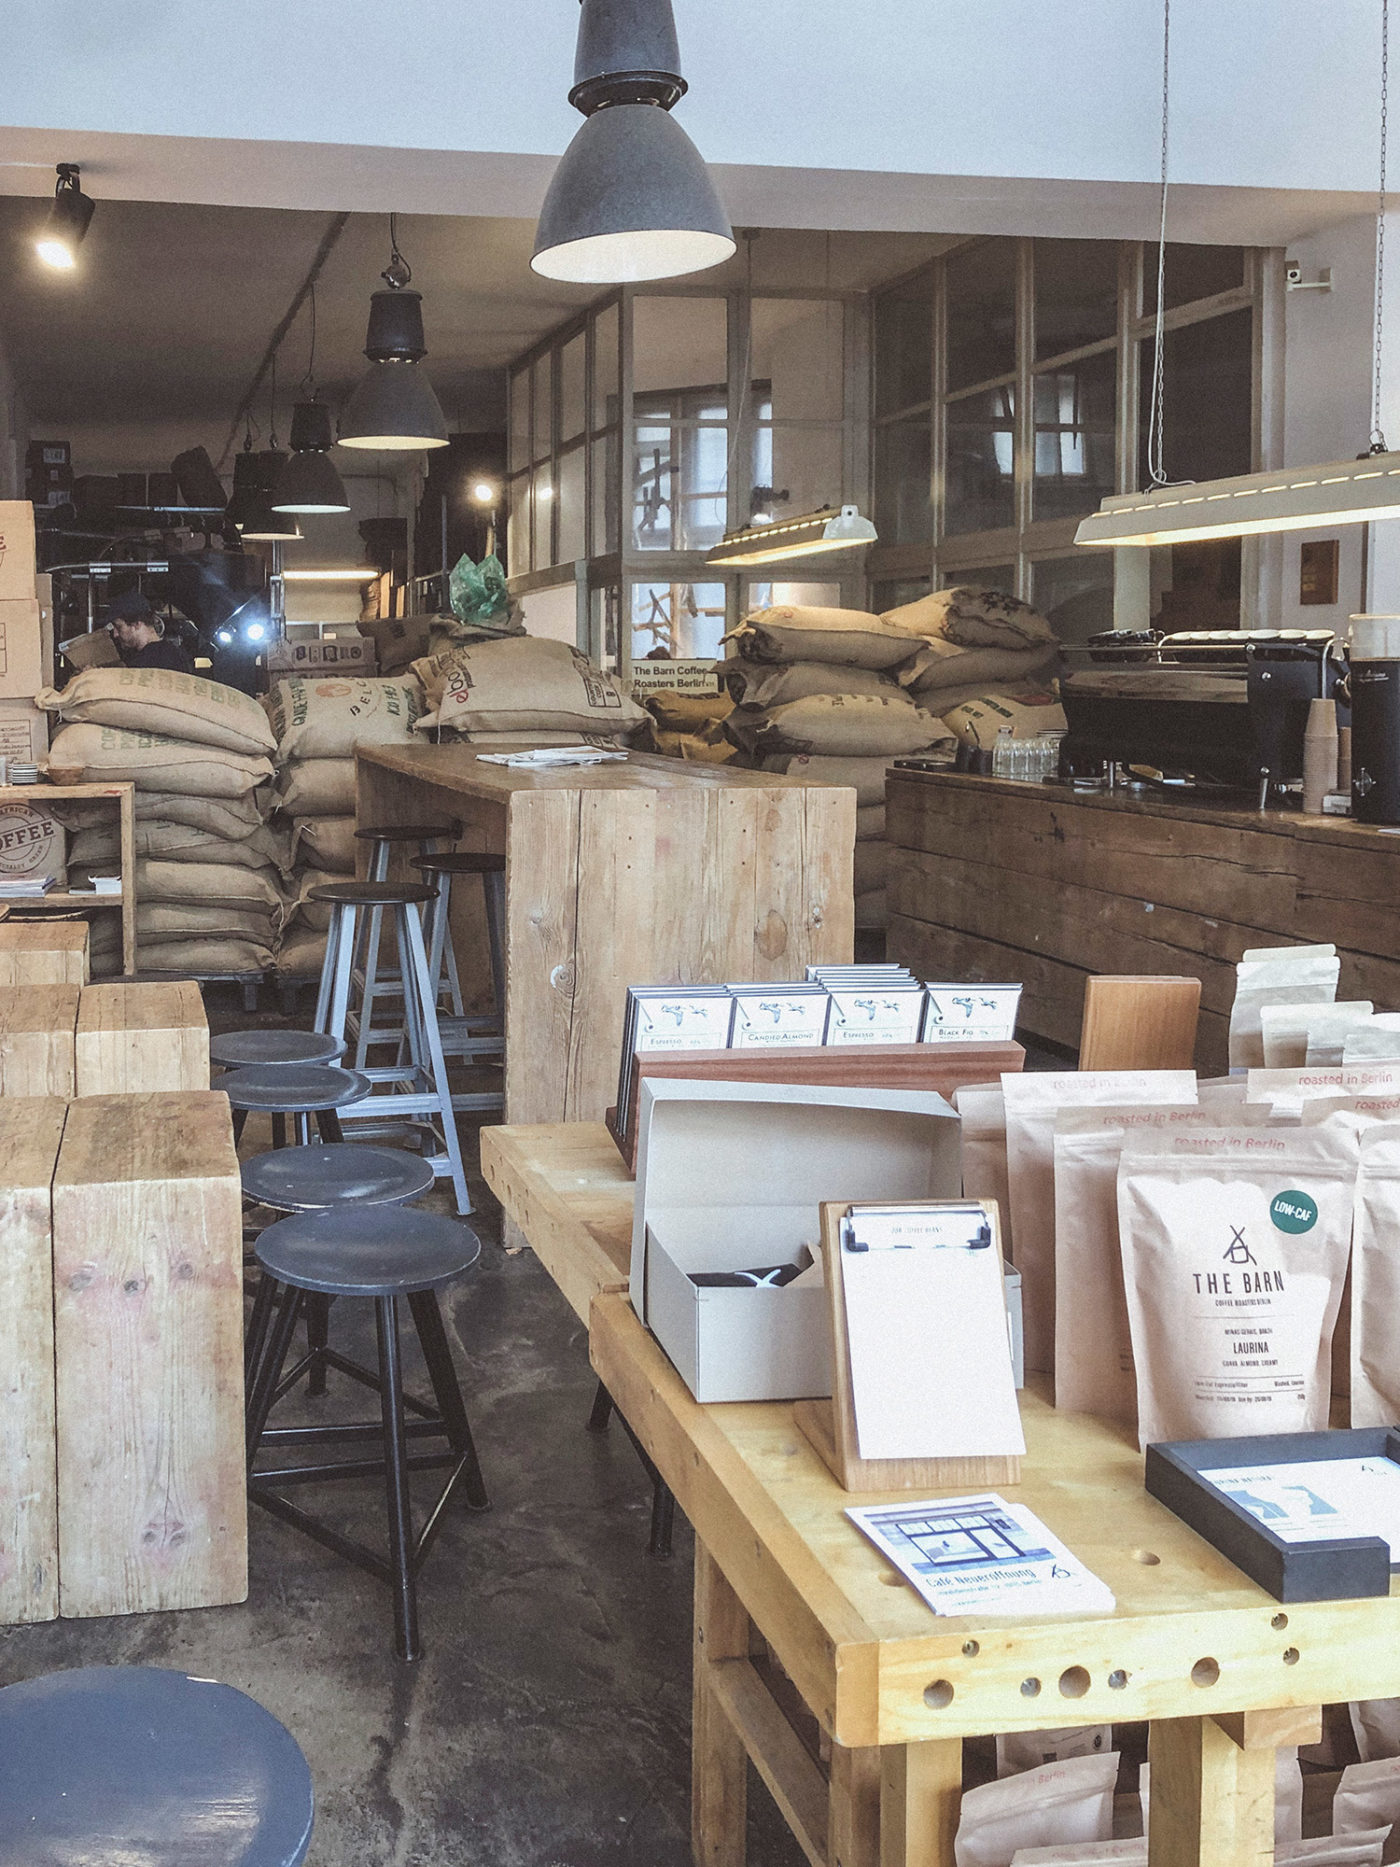 The Barn Roastery. Where a single cup of coffee changed everything.